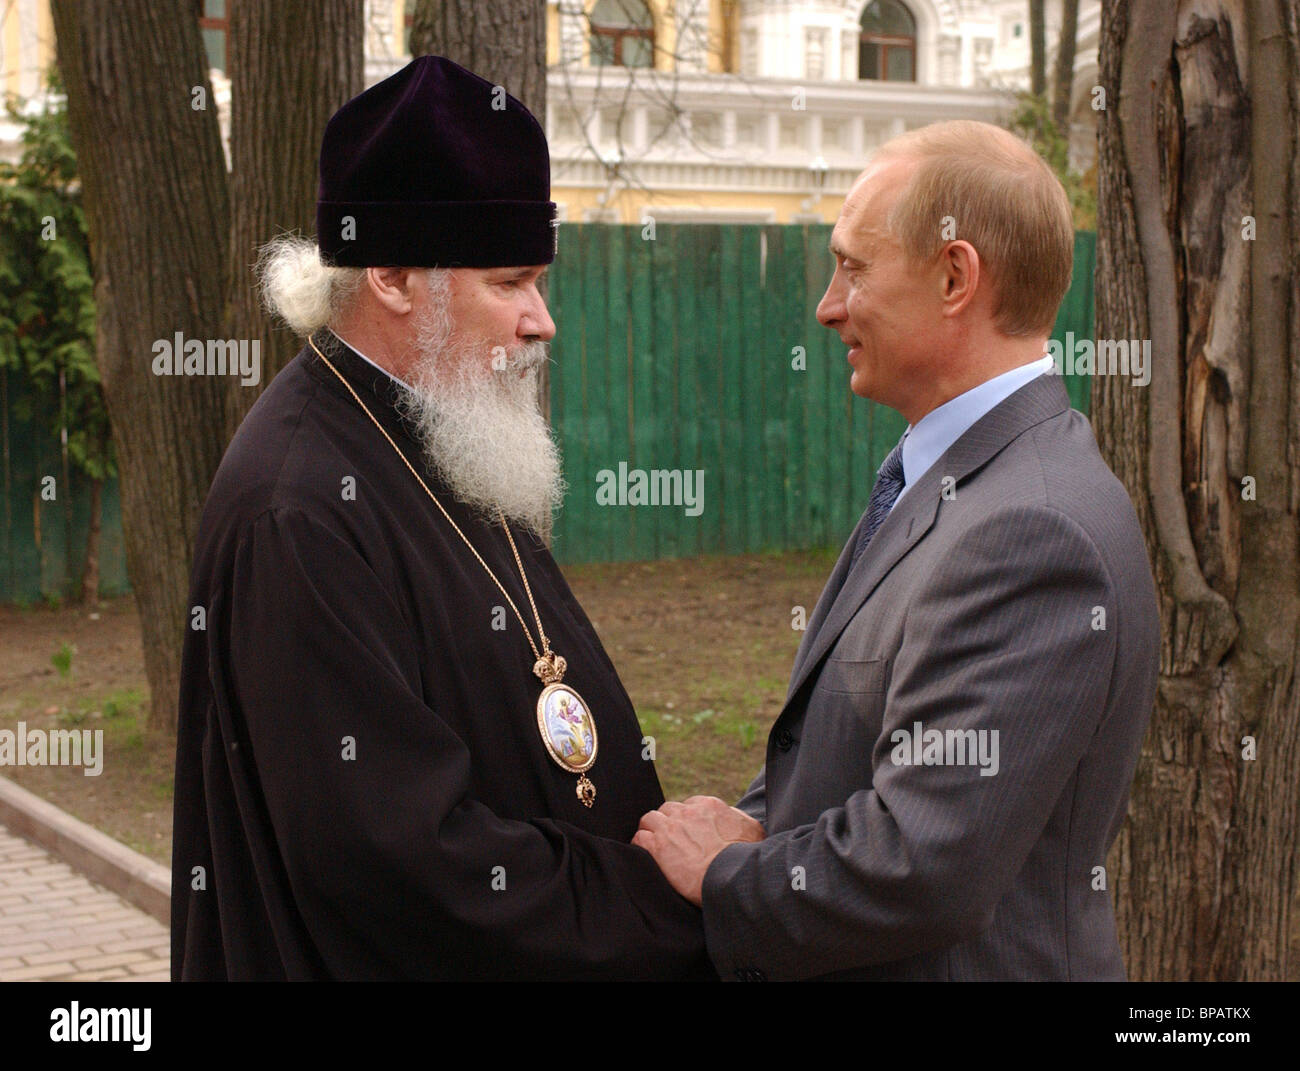 Putin, Alexy II congratulate each other on Easter holiday - Stock Image